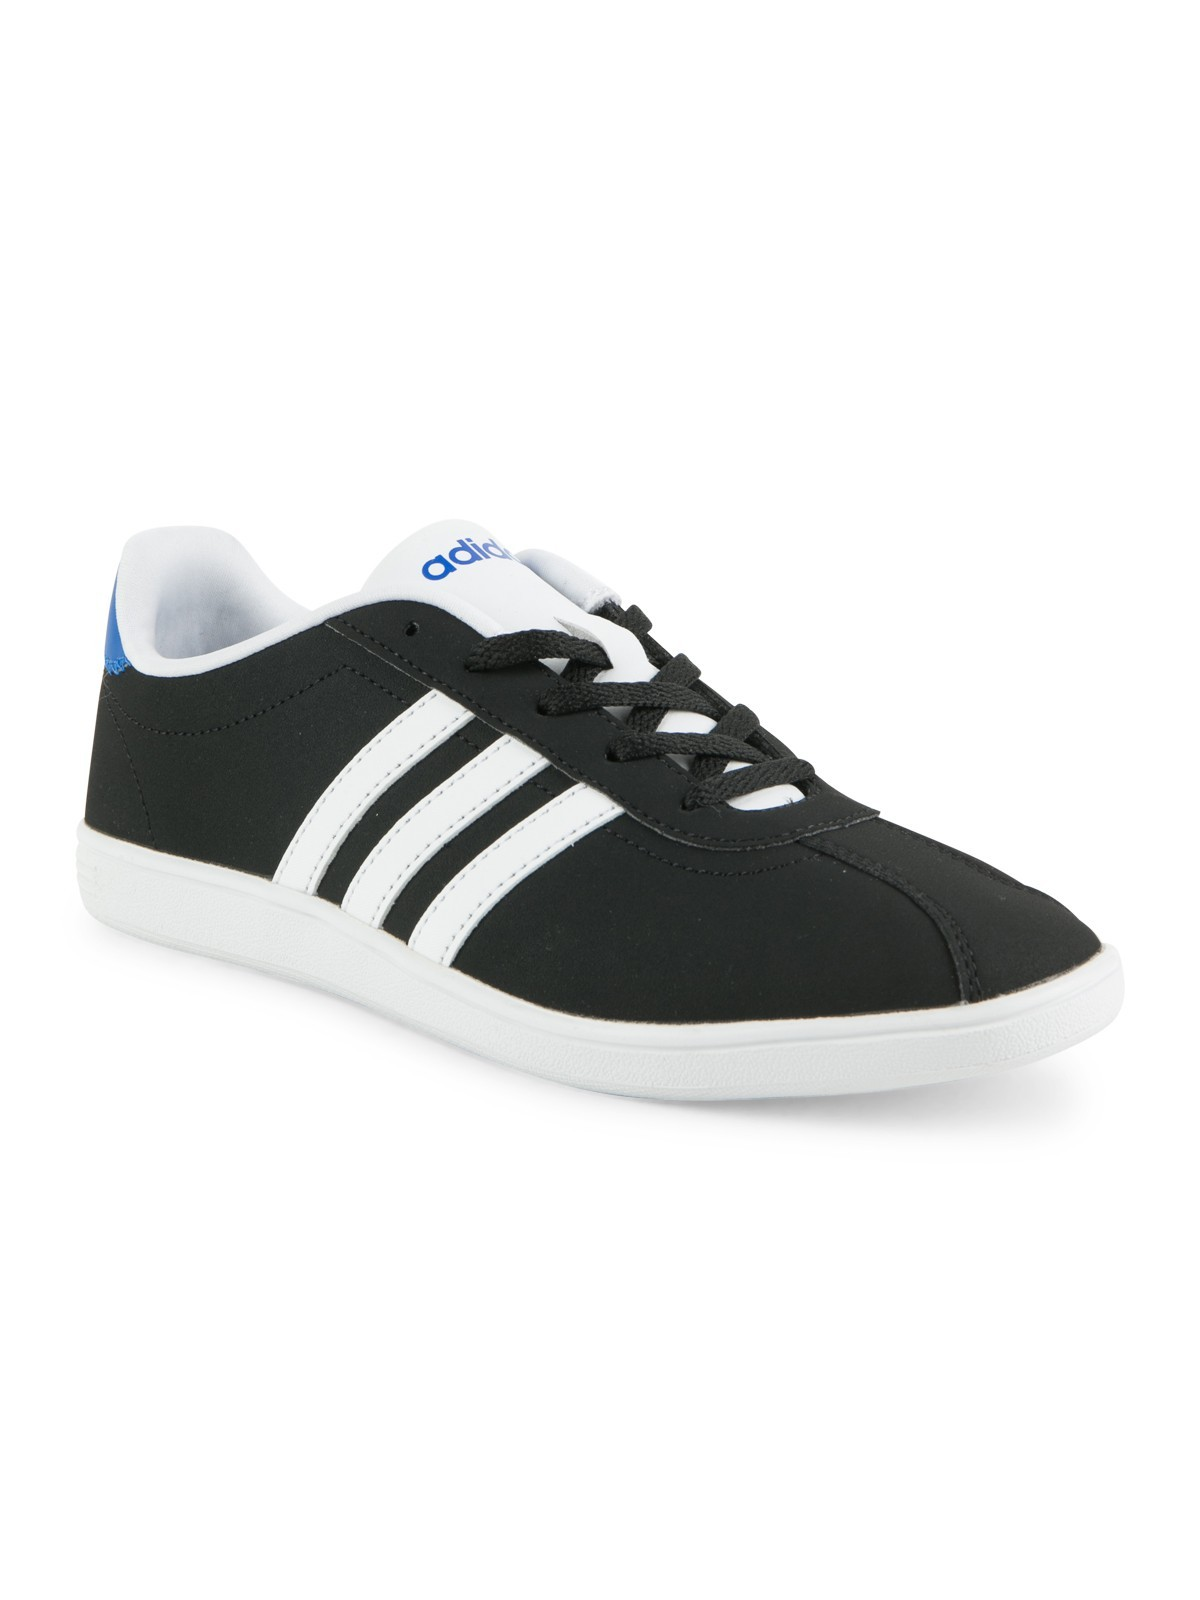 Baskets basses Adidas bout rond - DistriCenter